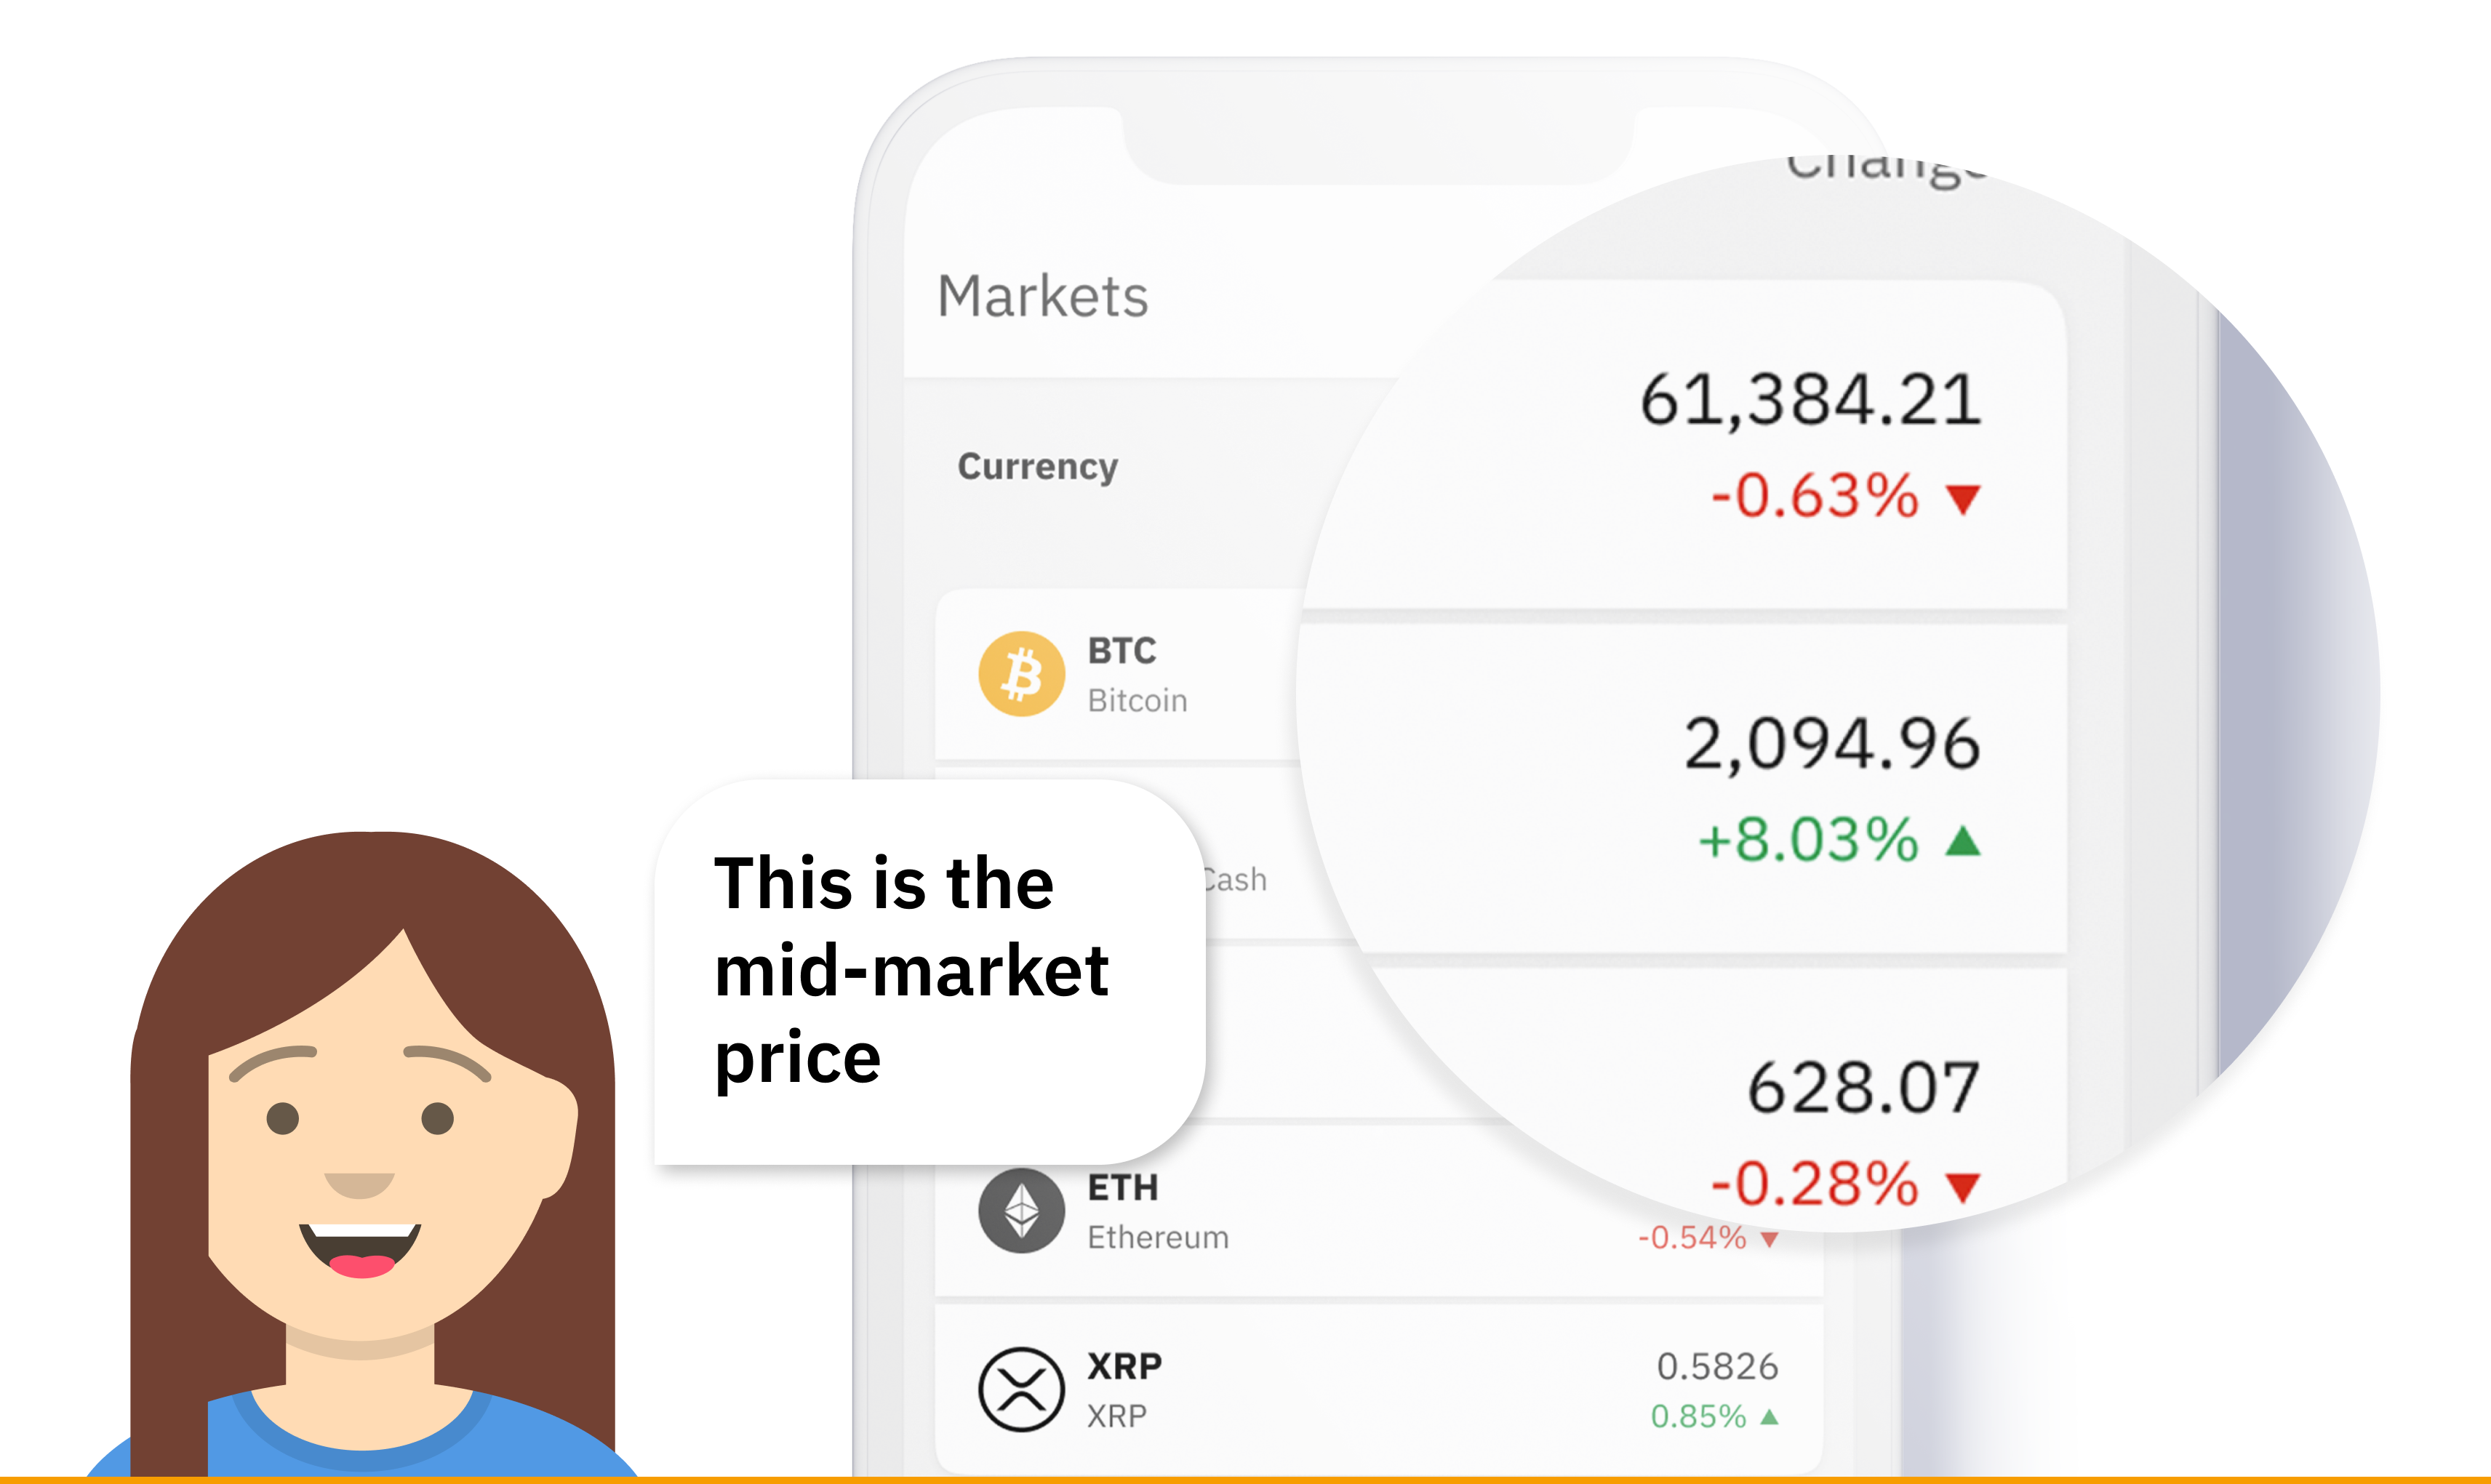 This image describes the mid-market prices displayed on the market screen inside the Quick Trade app.